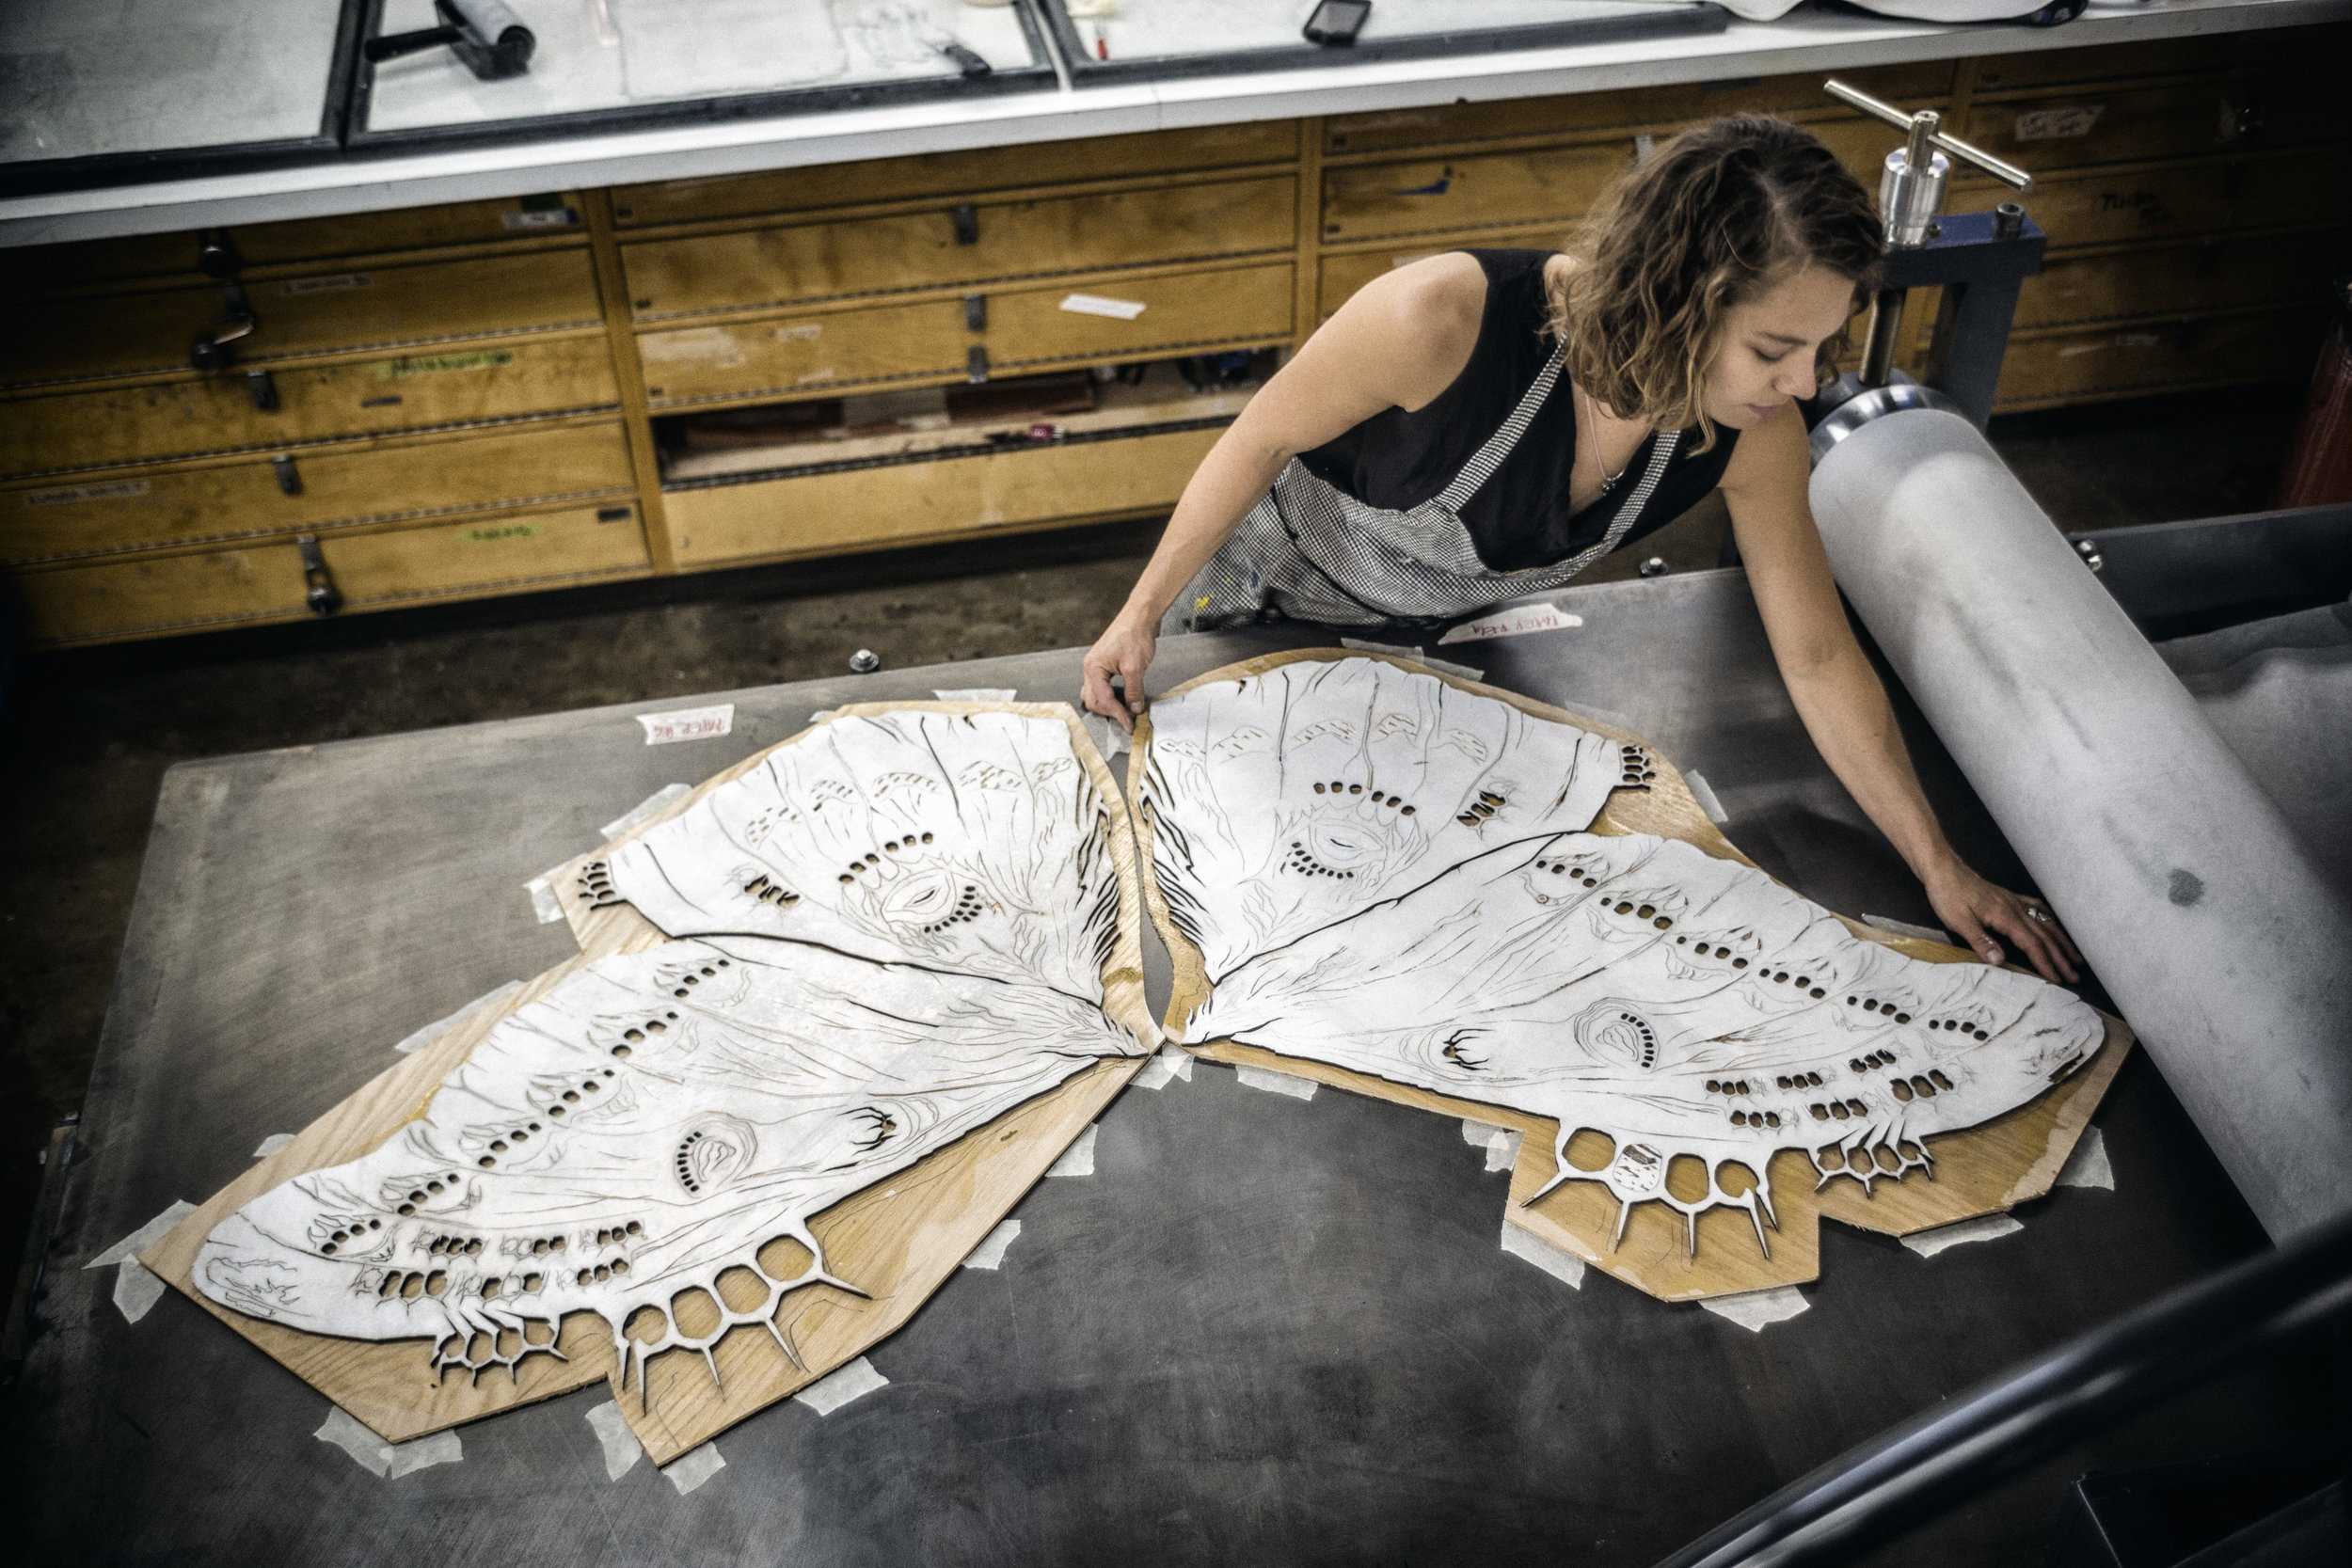 Volwiler-Stanley at the press, printing her laser-cut woodblock for the print-based installation series in  The Lawless Forest